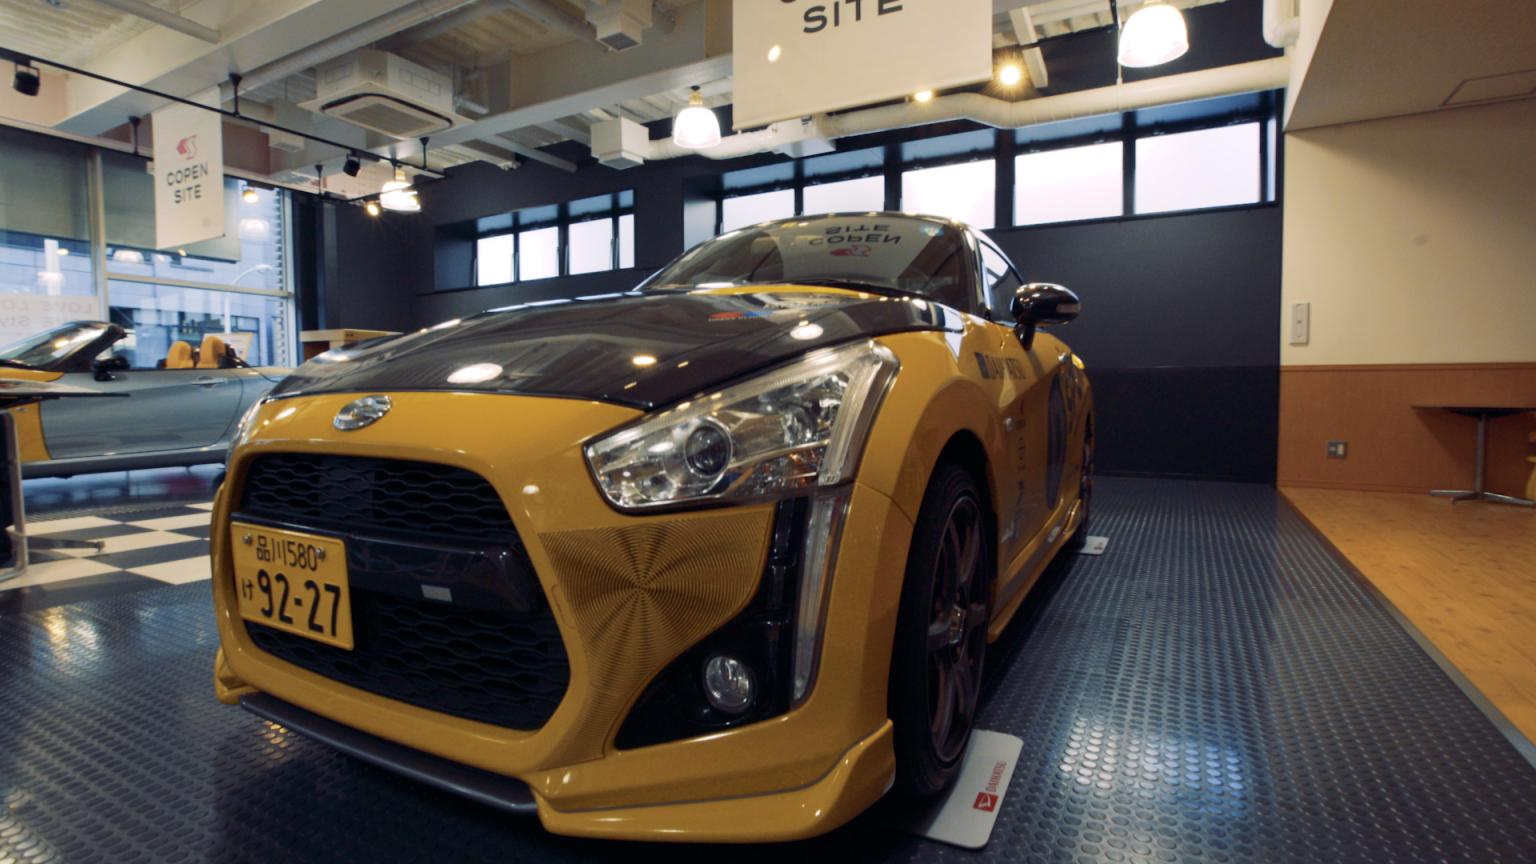 The latest Daihatsu Copen can be adorned with different 3D-printed patterns and colours